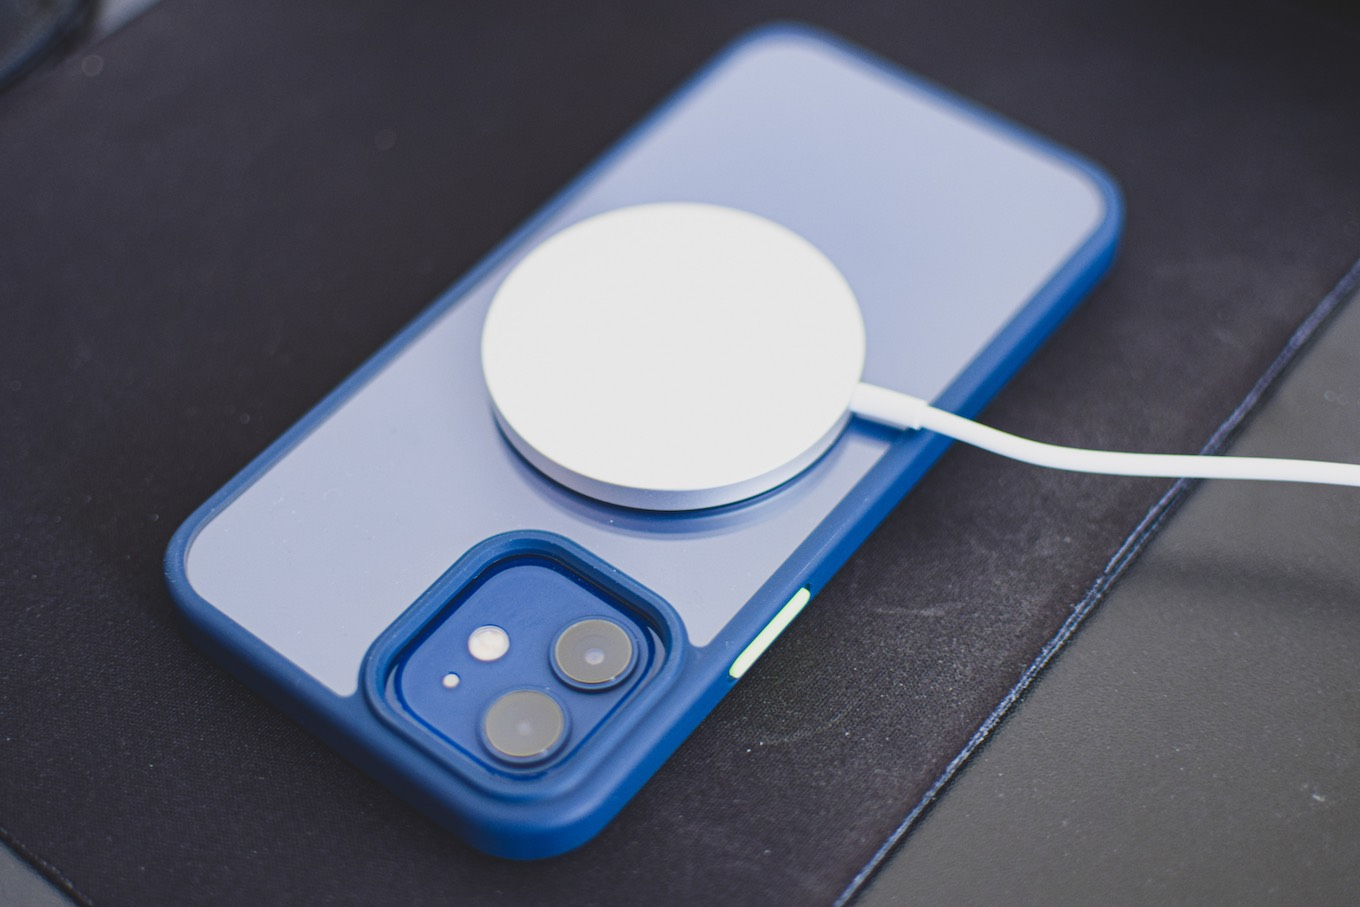 Wireless charger used with iPhone 12